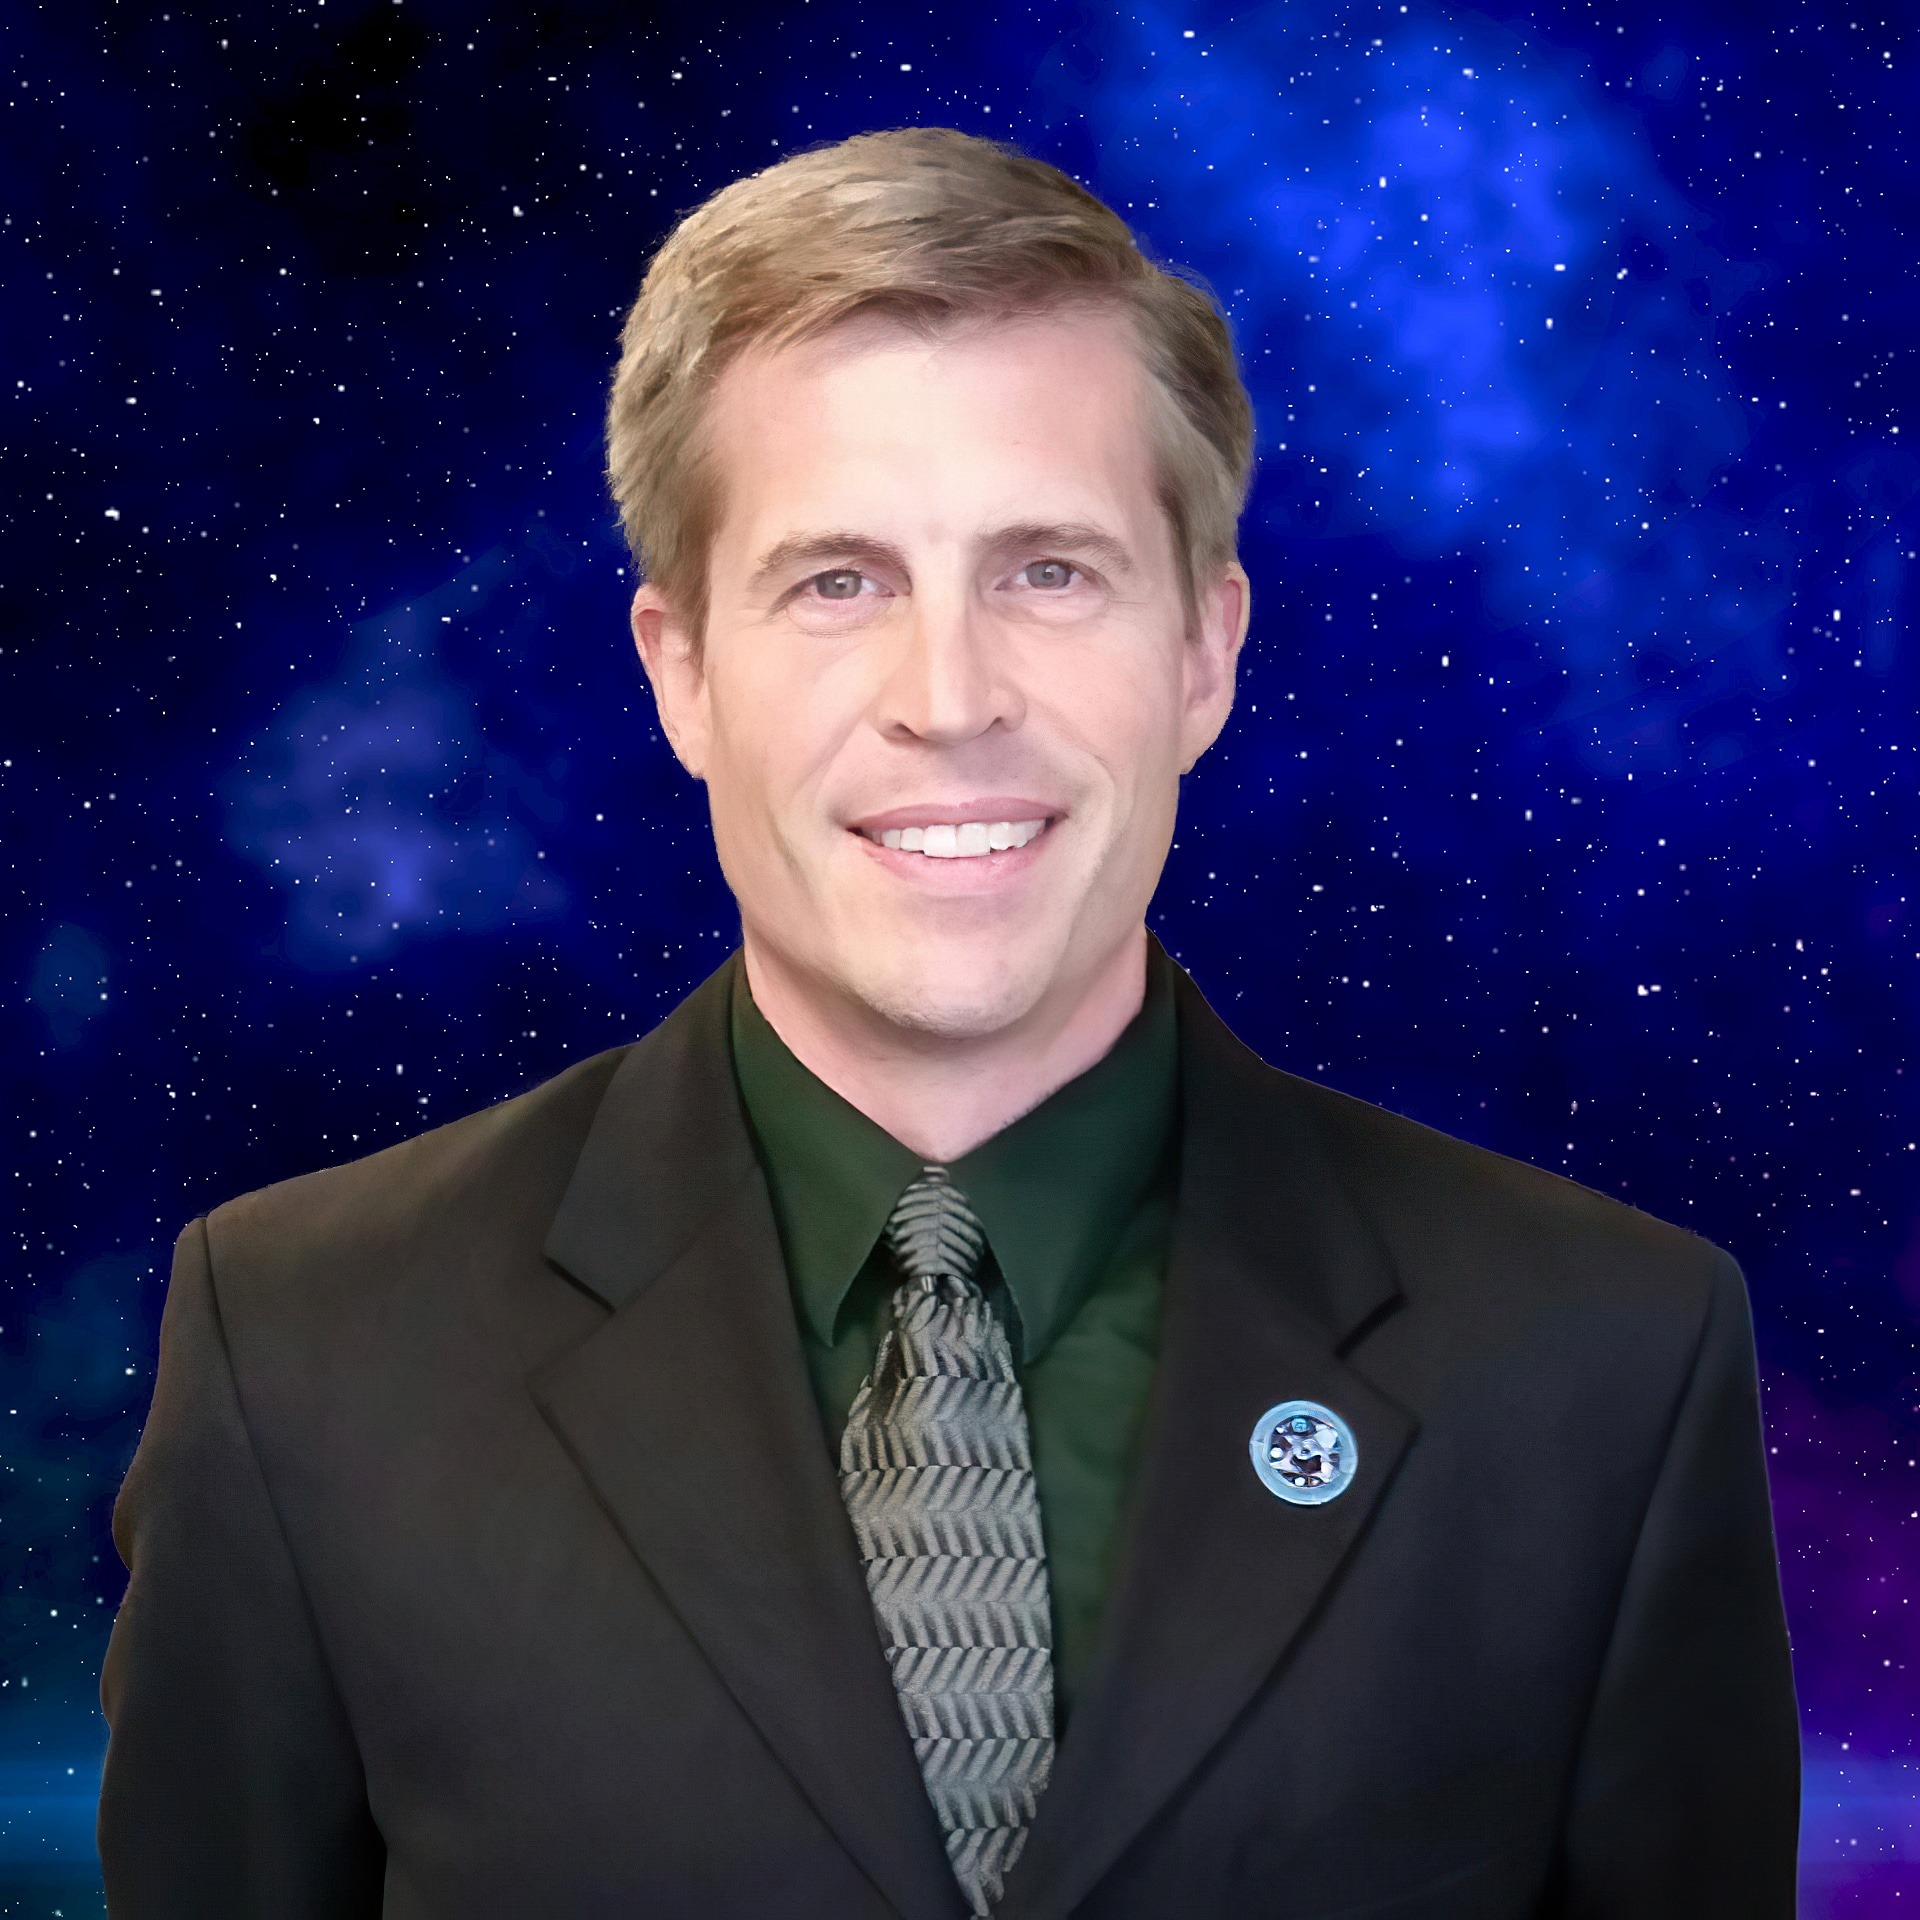 Photo of Michael G. Neece wearing a suit, smiling, with a starry background.